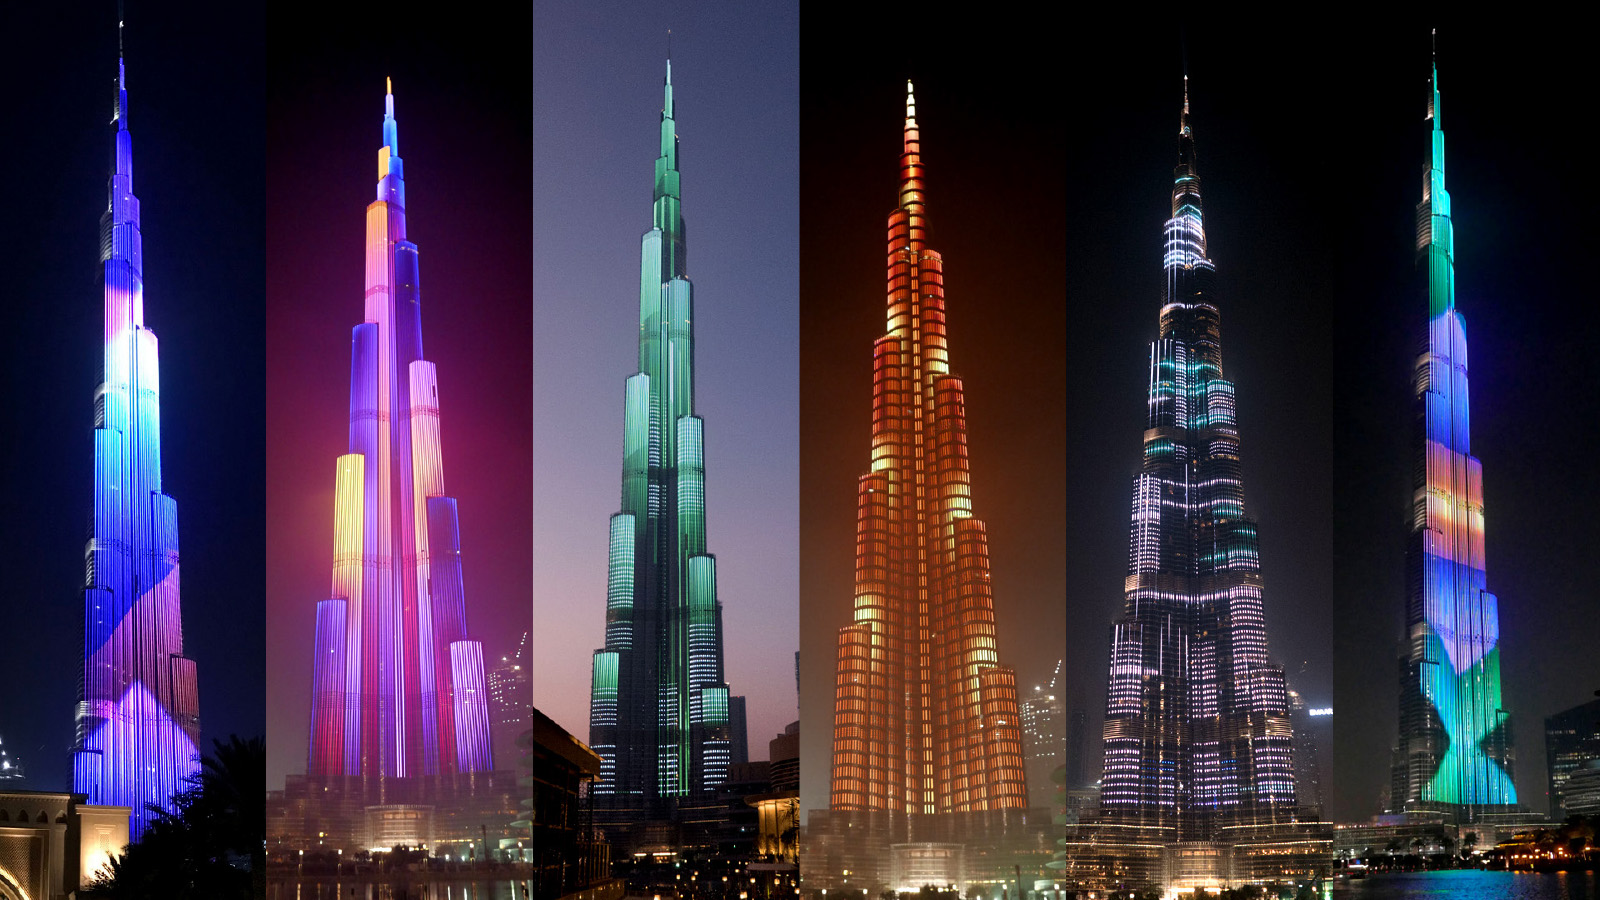 BURJ KHALIFA – TALLEST SCREEN ON THE PLANET